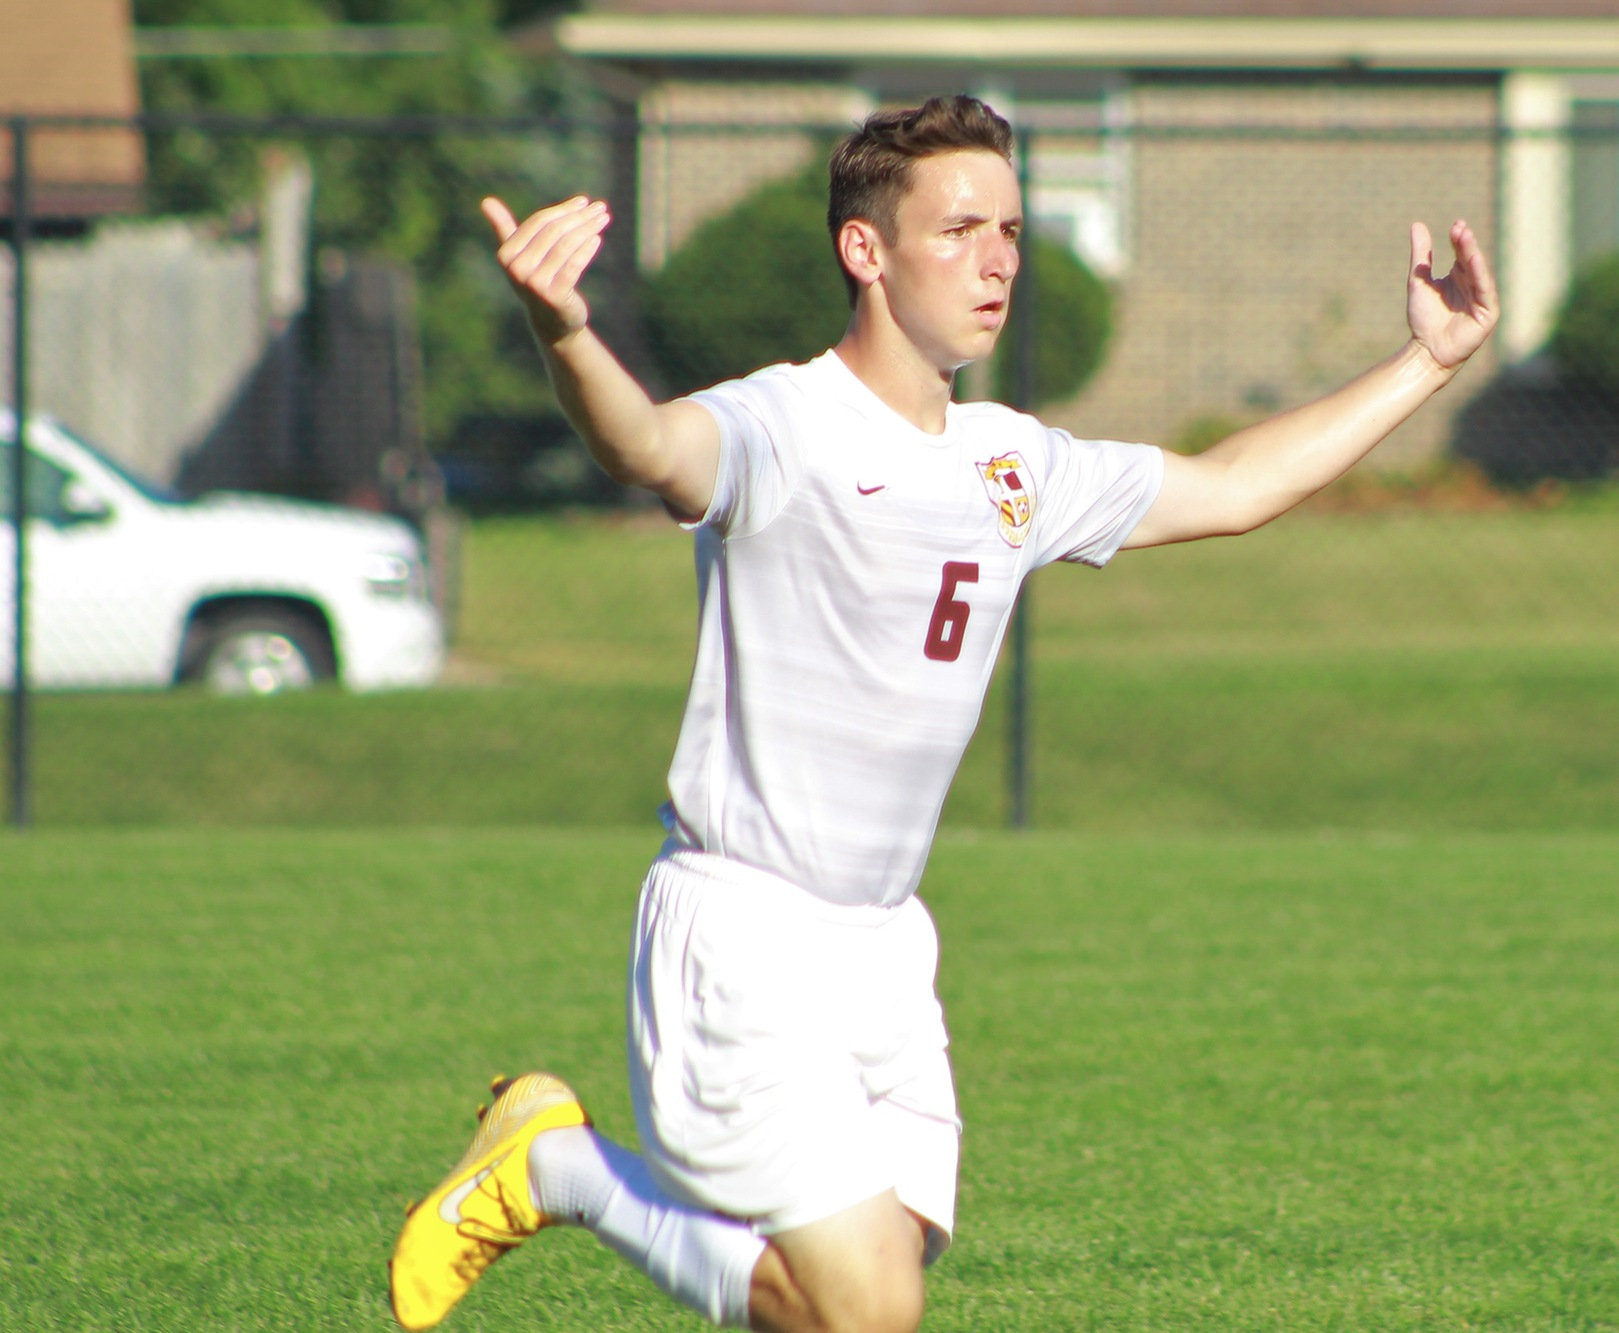 Nathan Stupka scored the only goal for the Faith Eagles in a Double OT tie with Union College